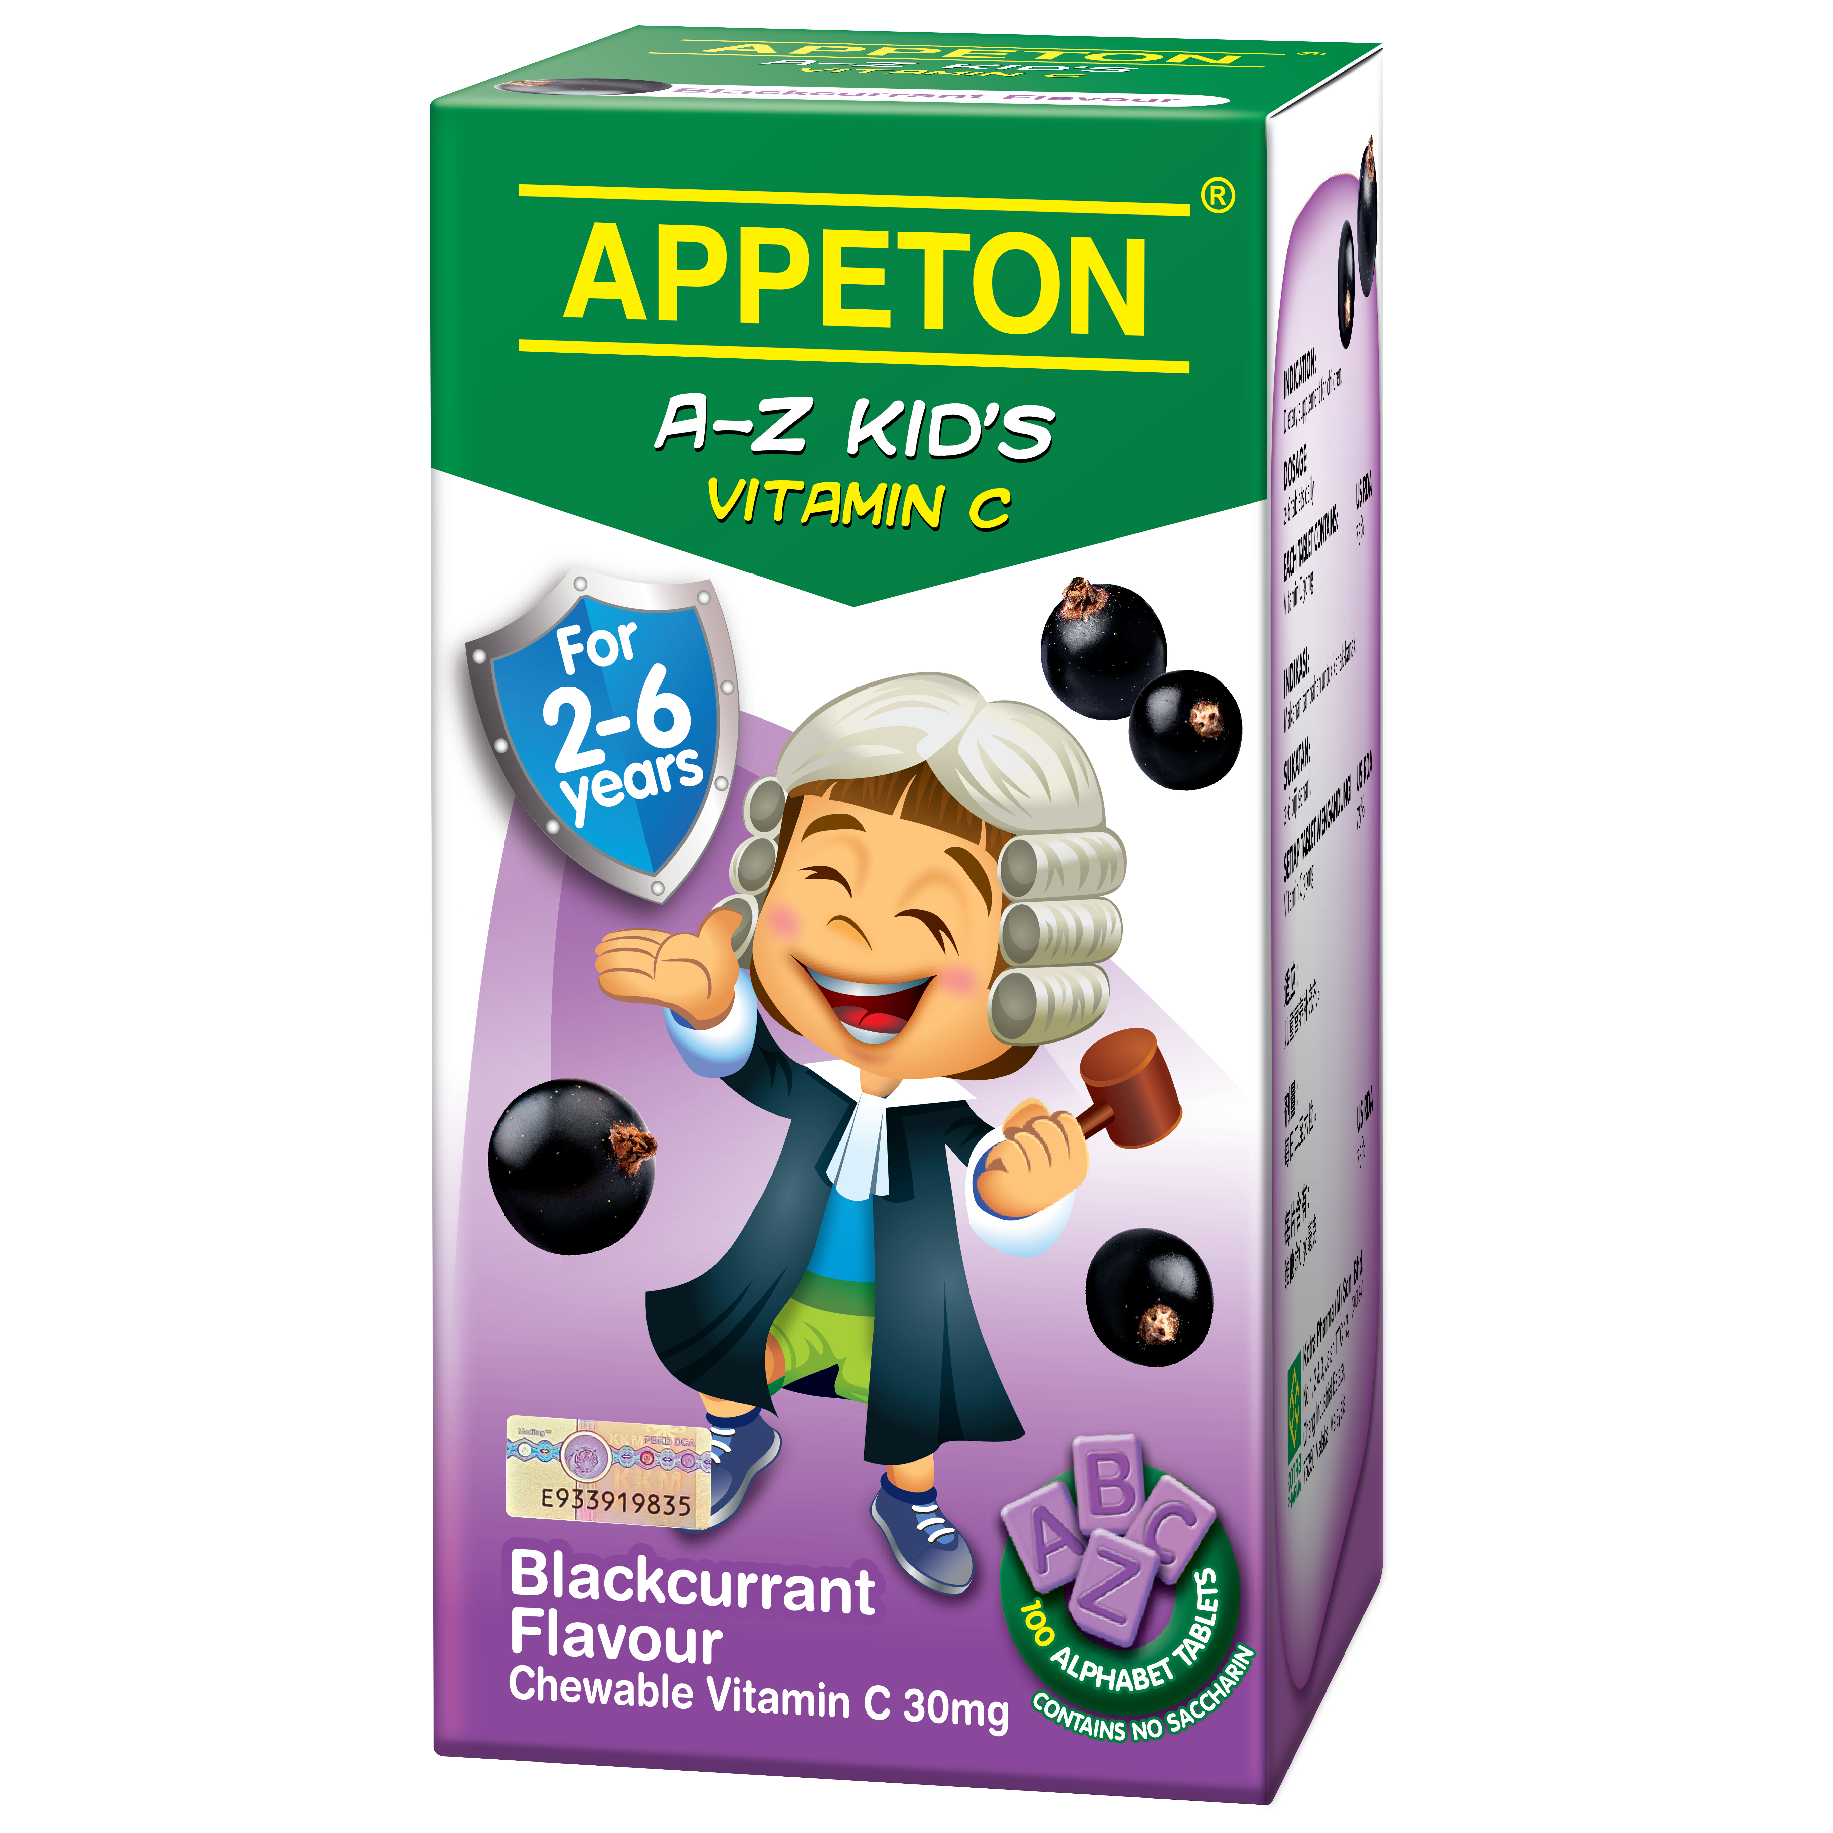 Appeton Activ-C Orange / Strawberry Blackcurrant 100Mg 60 Tablets Vitamin C